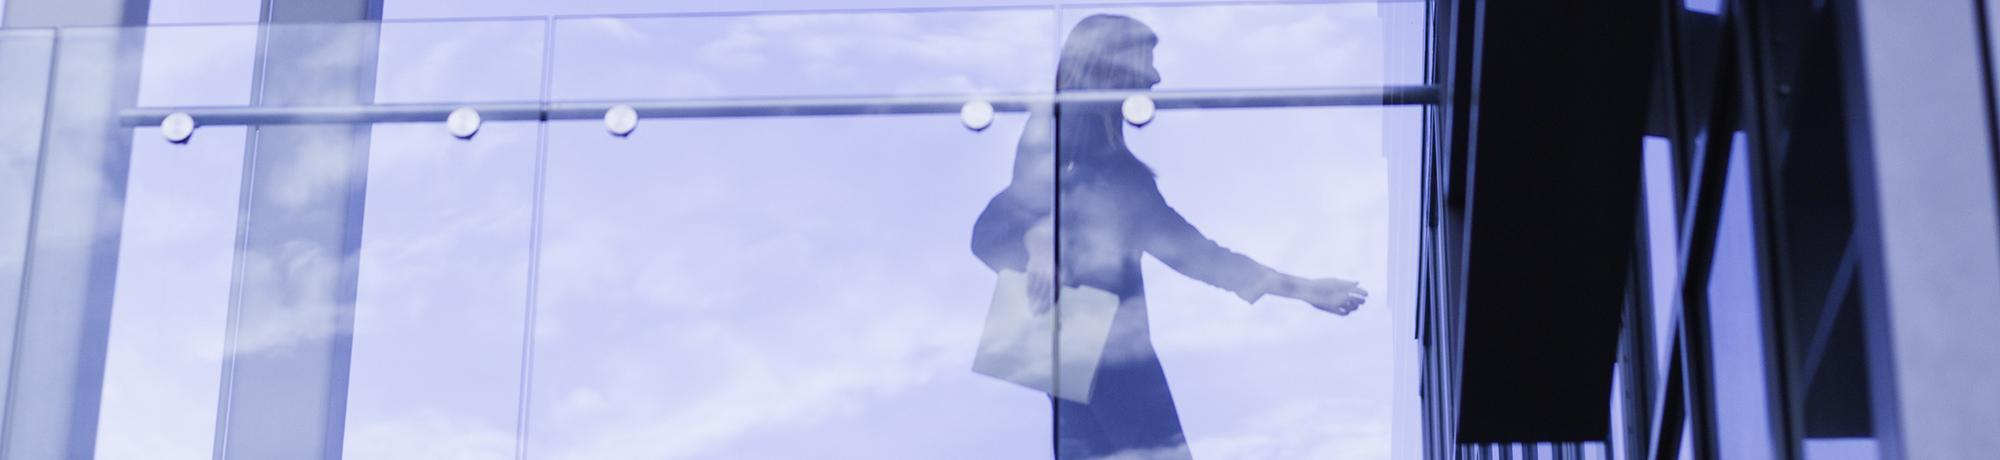 Decorative image of person walking across skybridge.